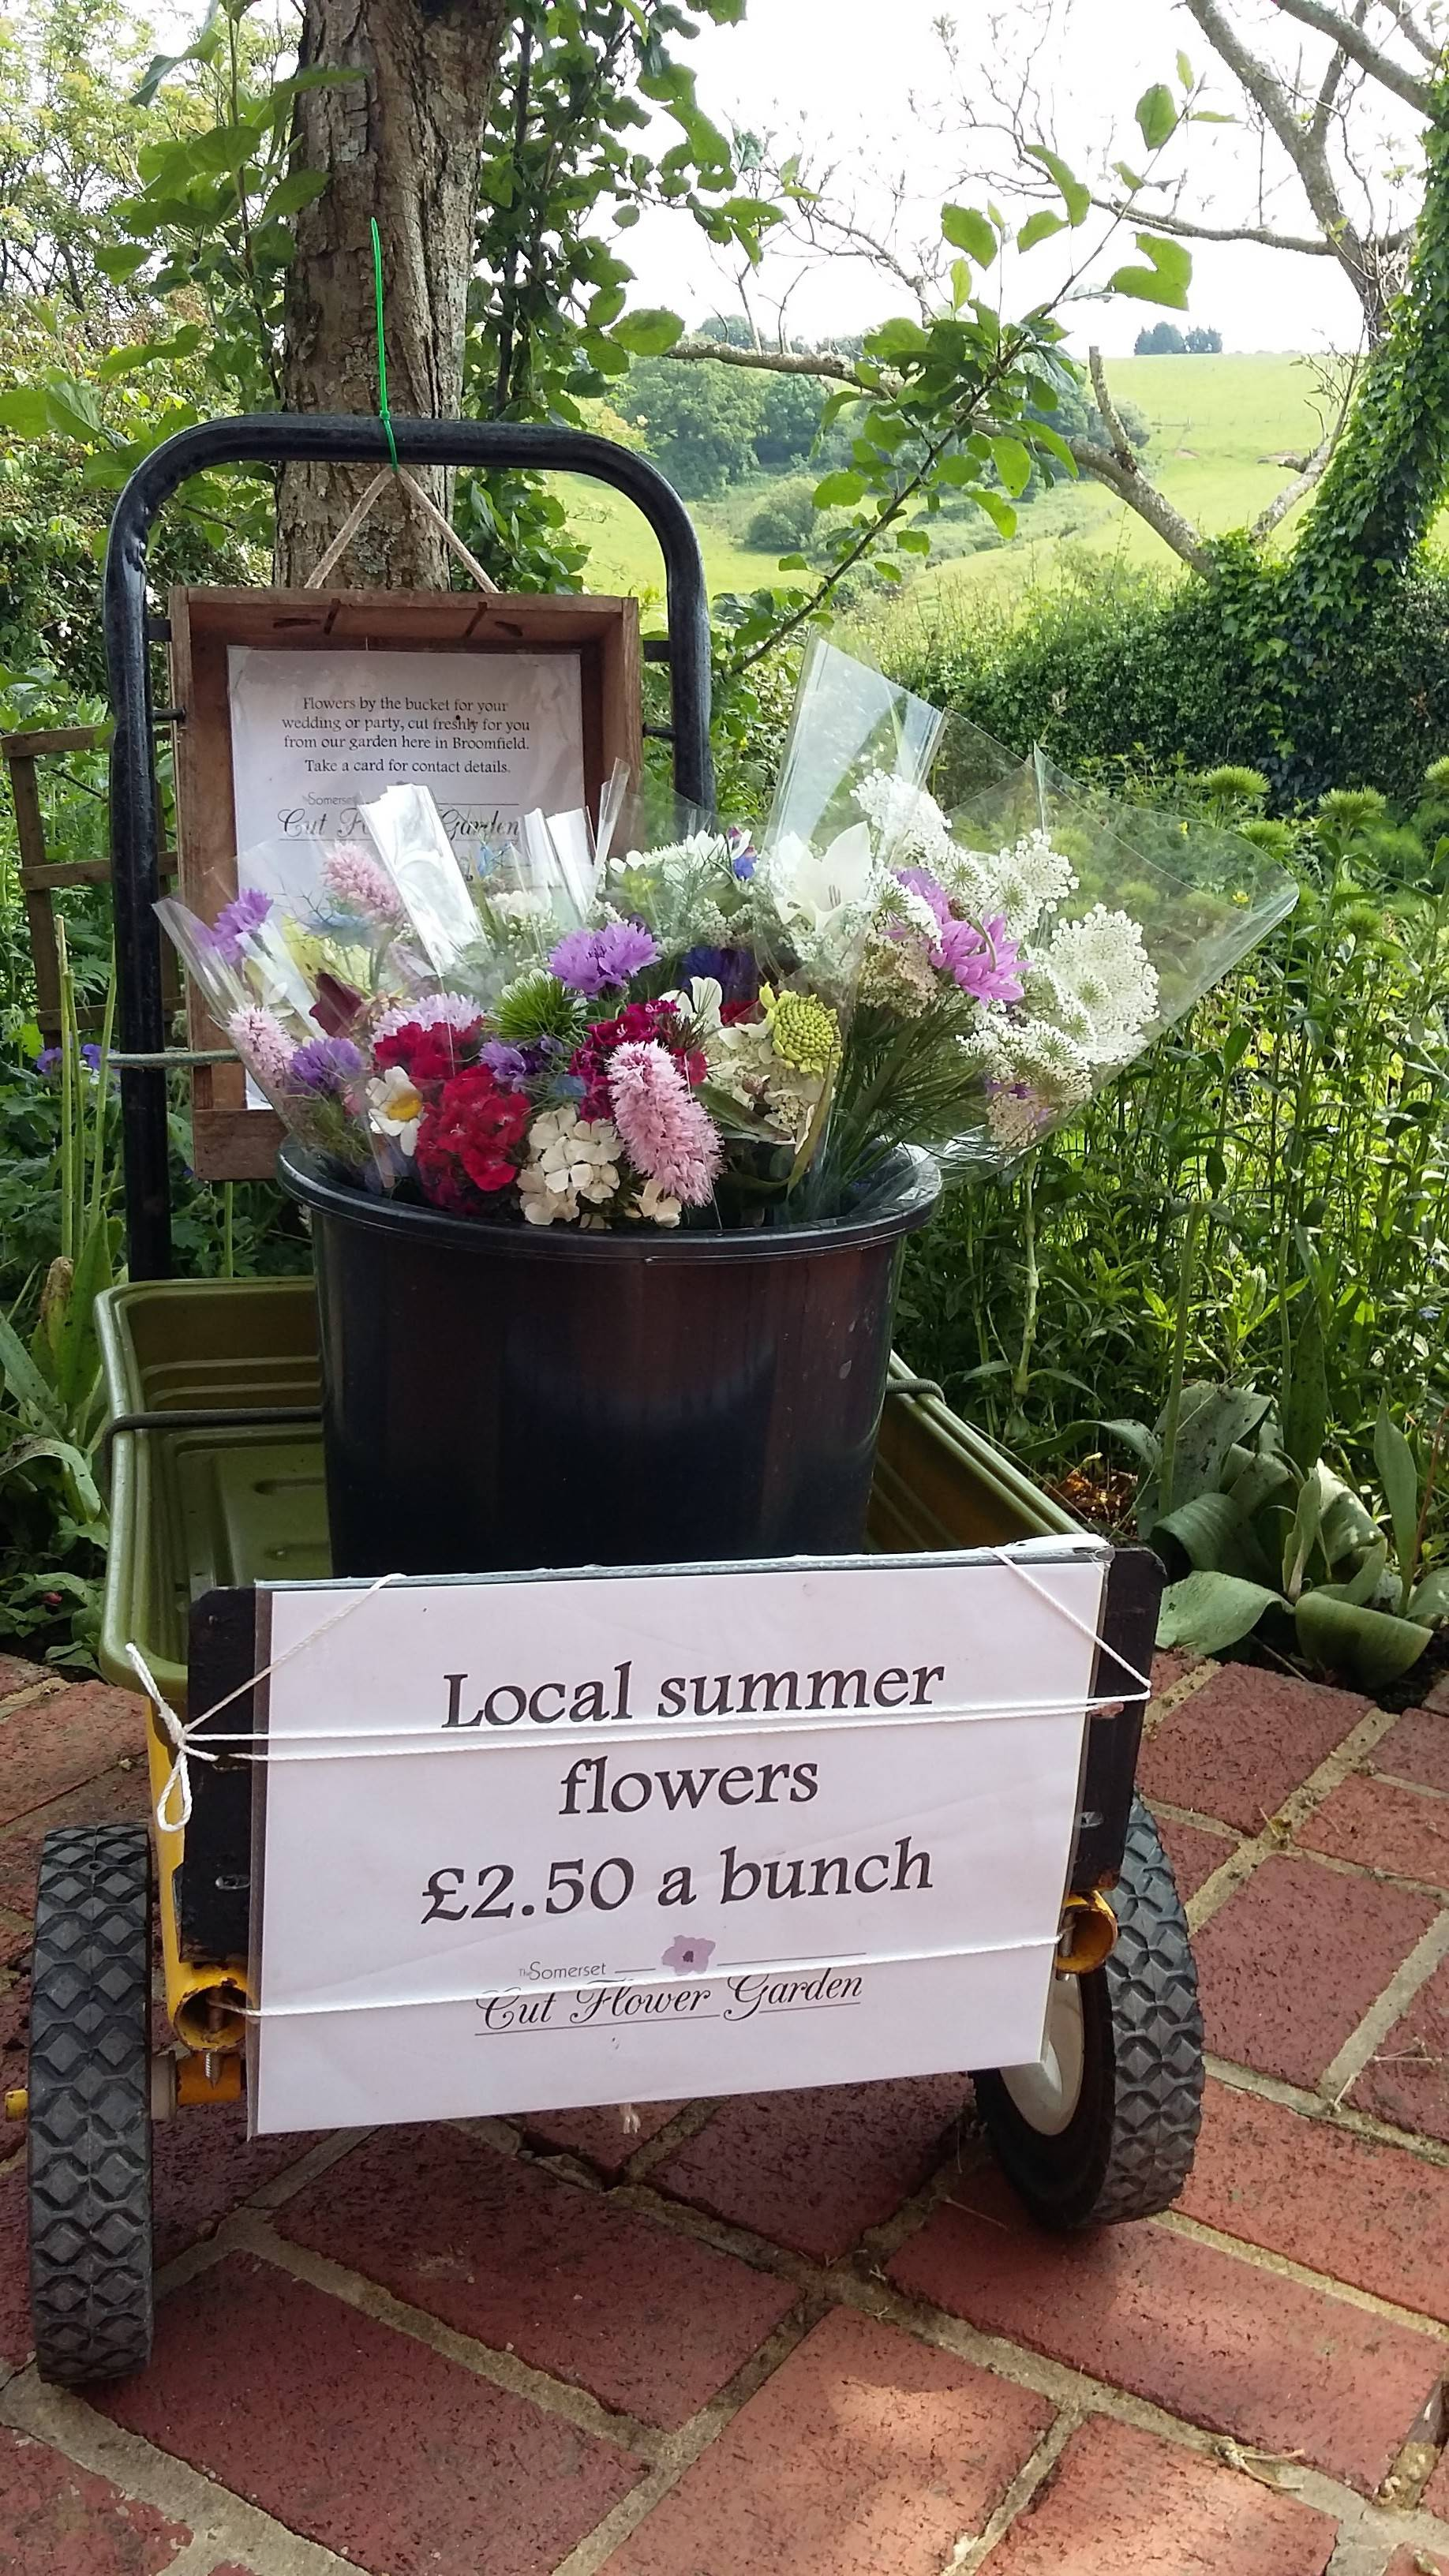 Go for locally grown summer flowers